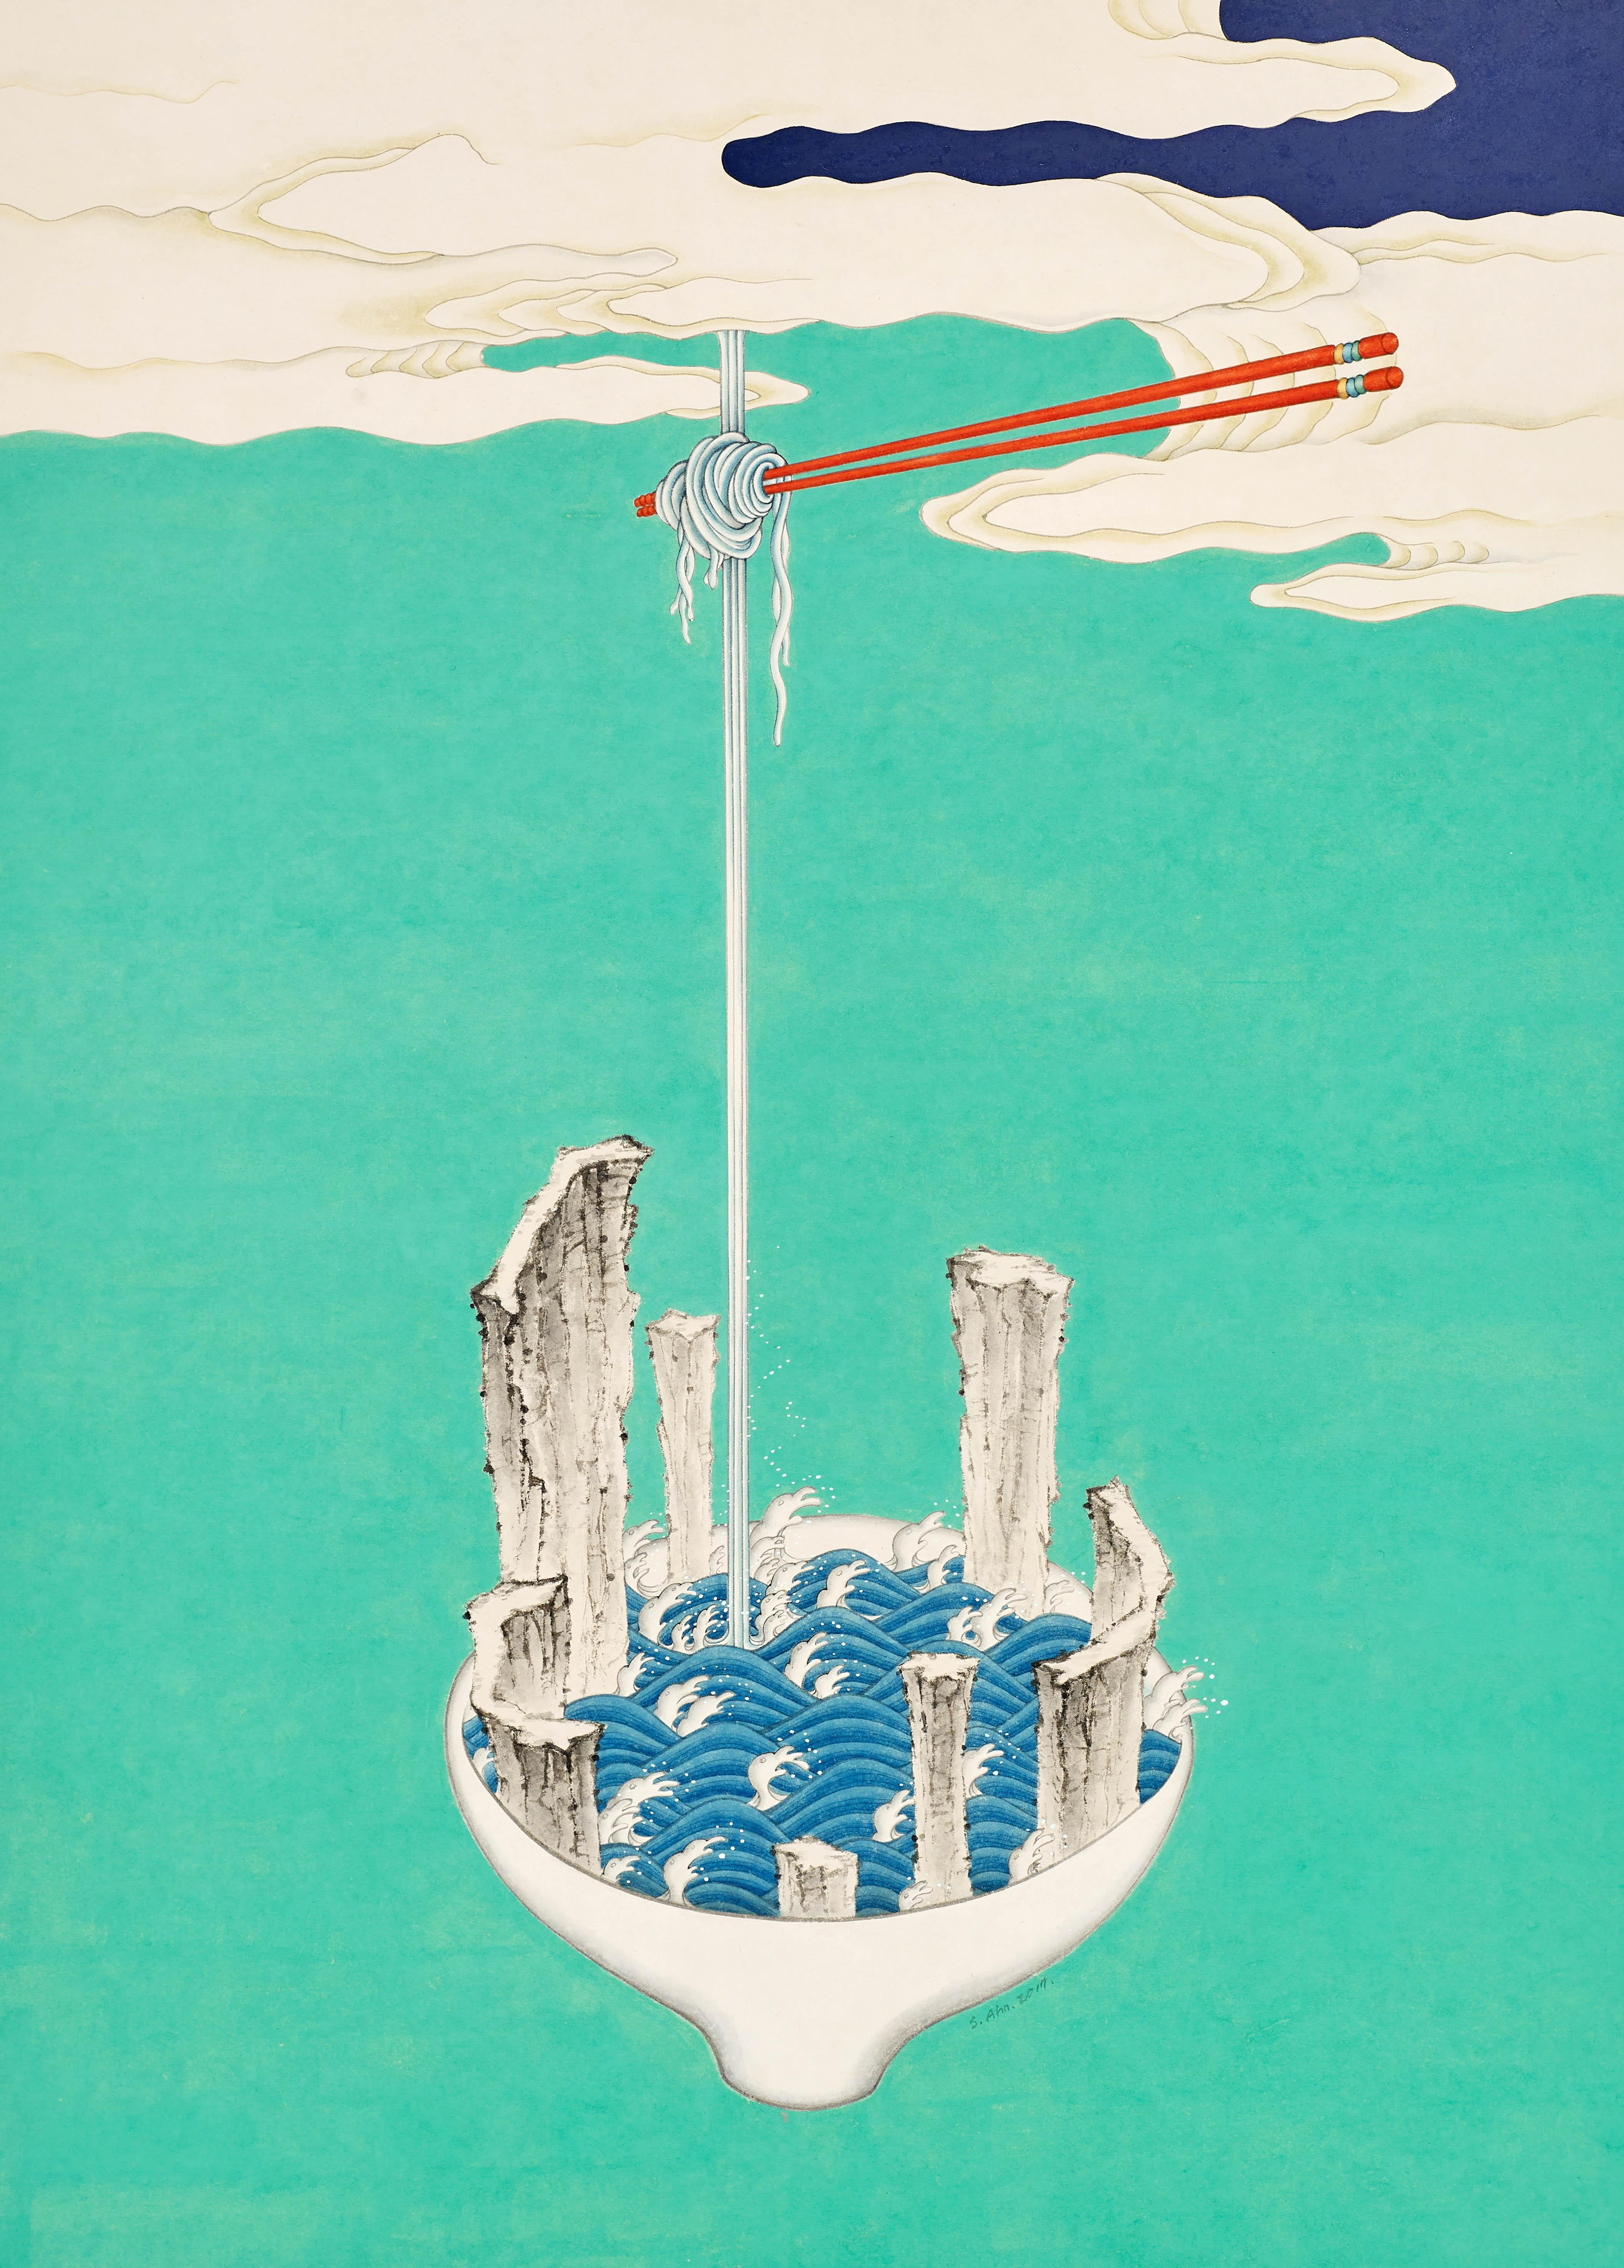 Aphrodisiac 09, surreal painting of a bowl of noodles and chopsticks, teal